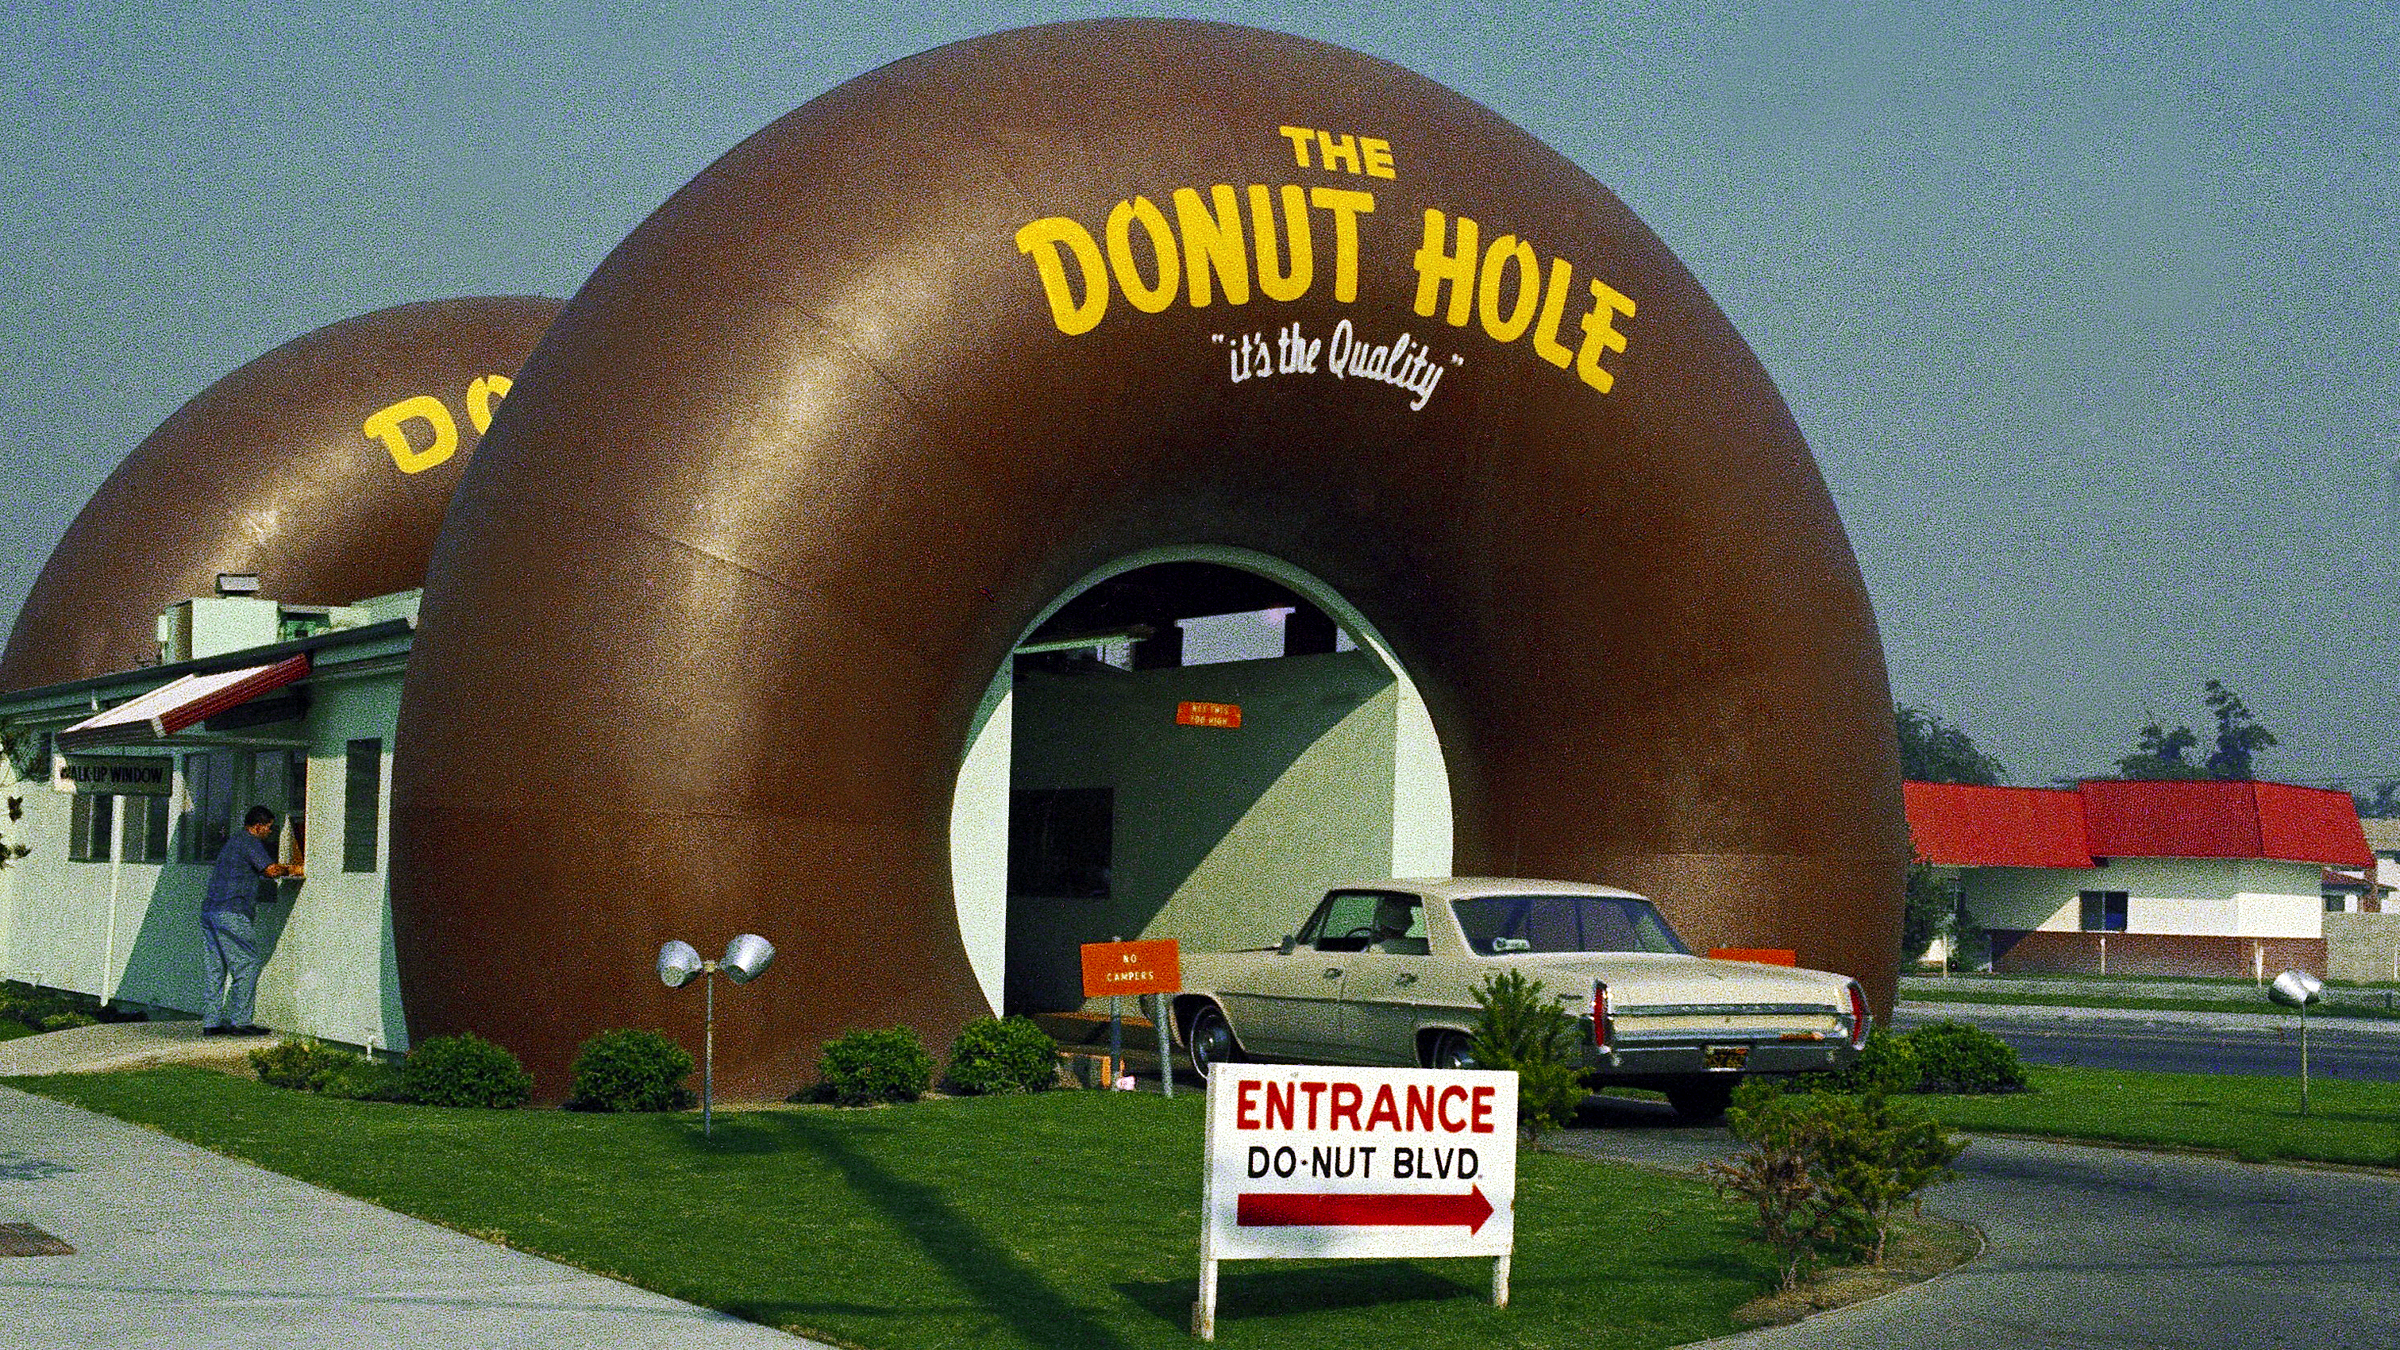 A drive-through coffee and donut shop in an eye-catching building, the Donut Hole, is shown in Los Angeles, Nov. 1970.